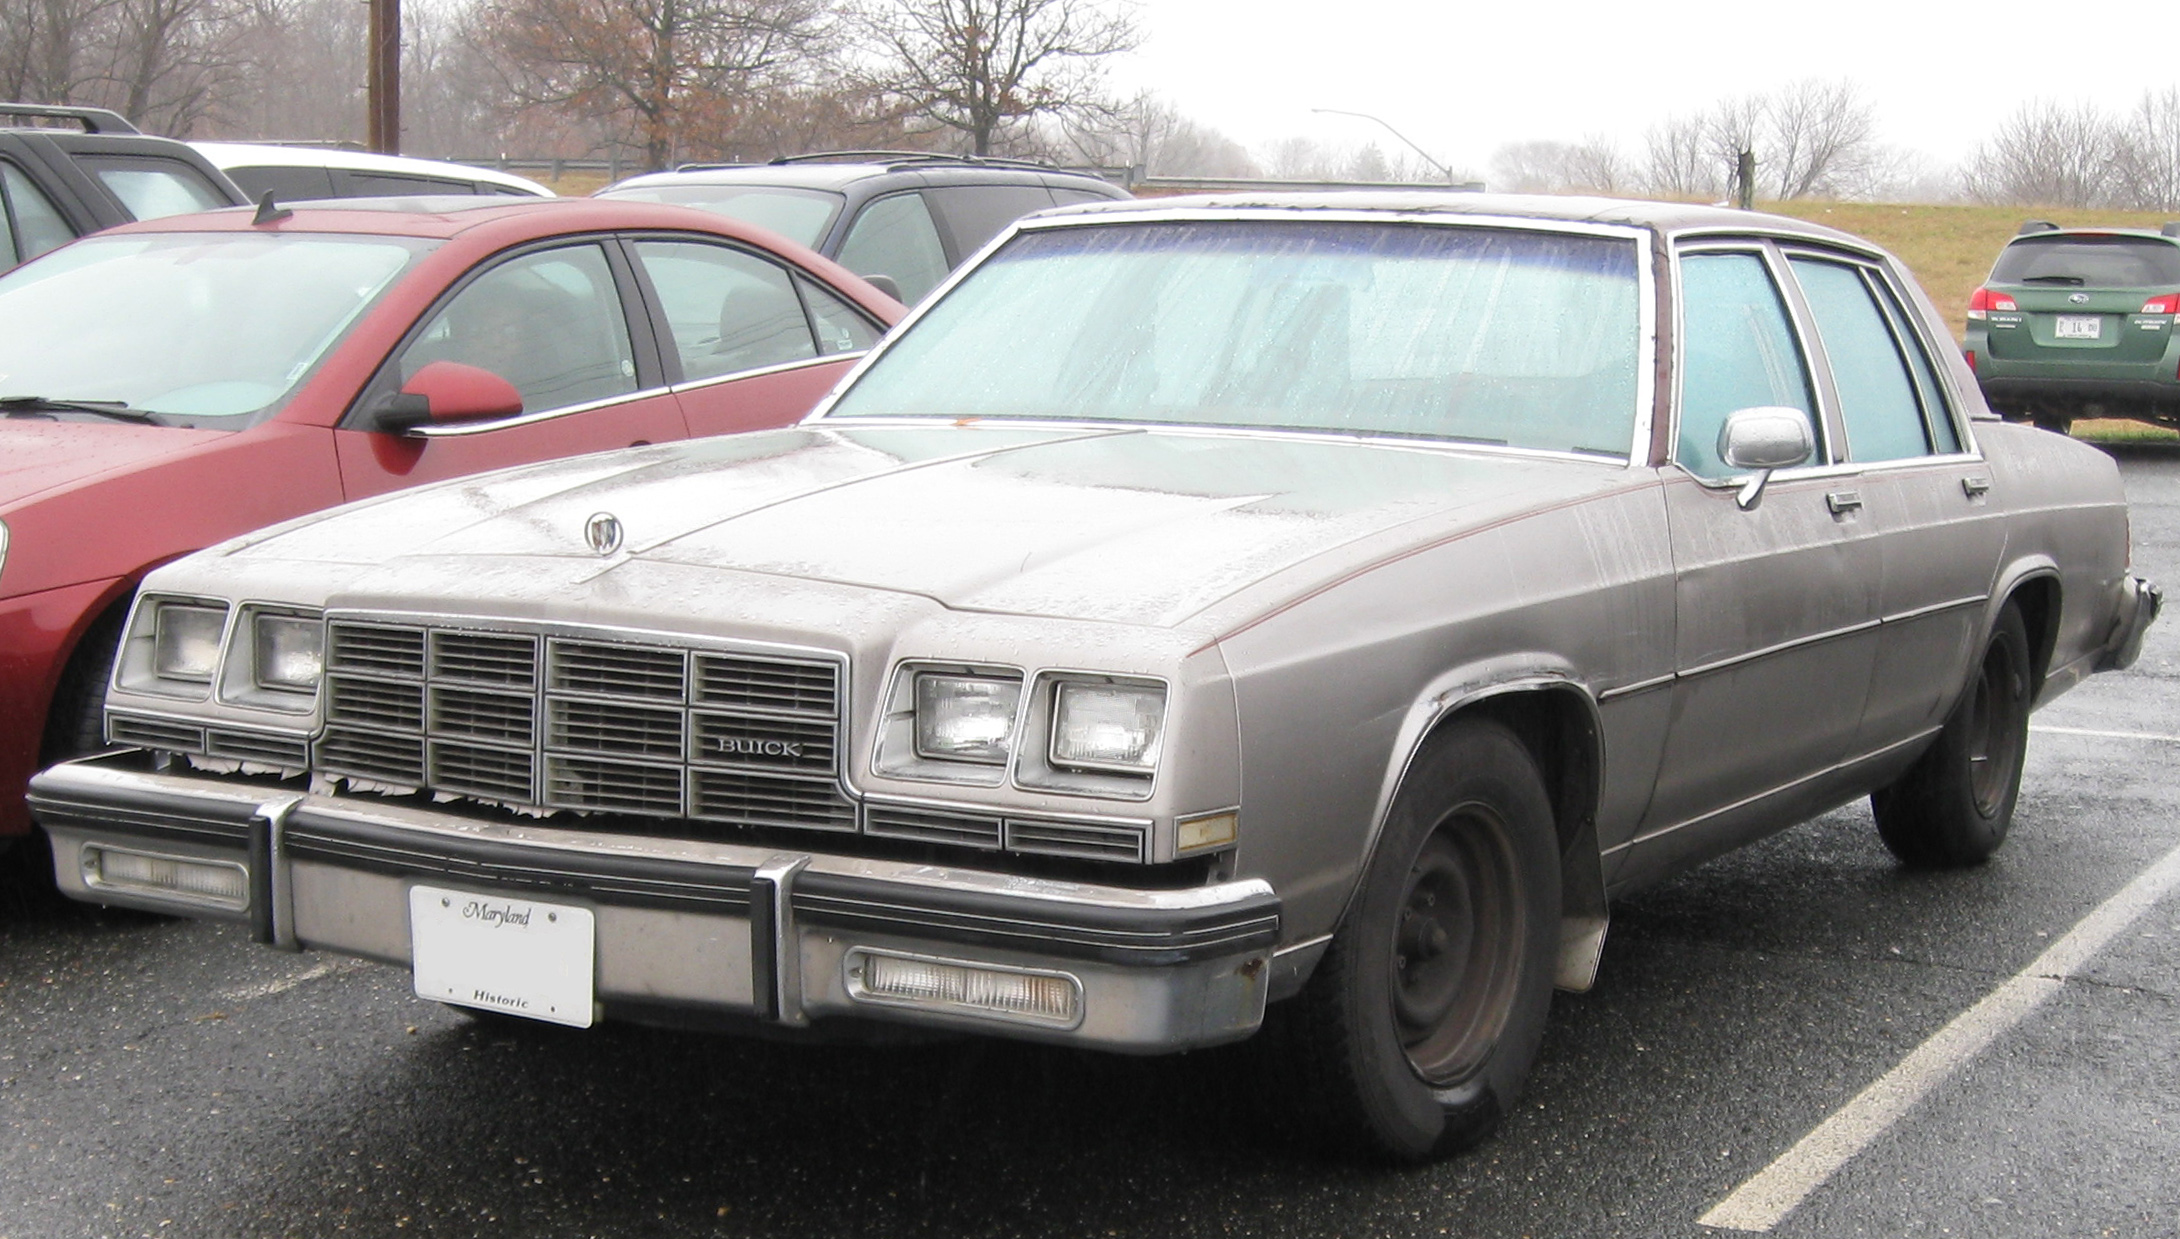 My 5th car 1990 buick lesabre mine the custom version not like this t type cars i ve owned pinterest buick lesabre buick and cars